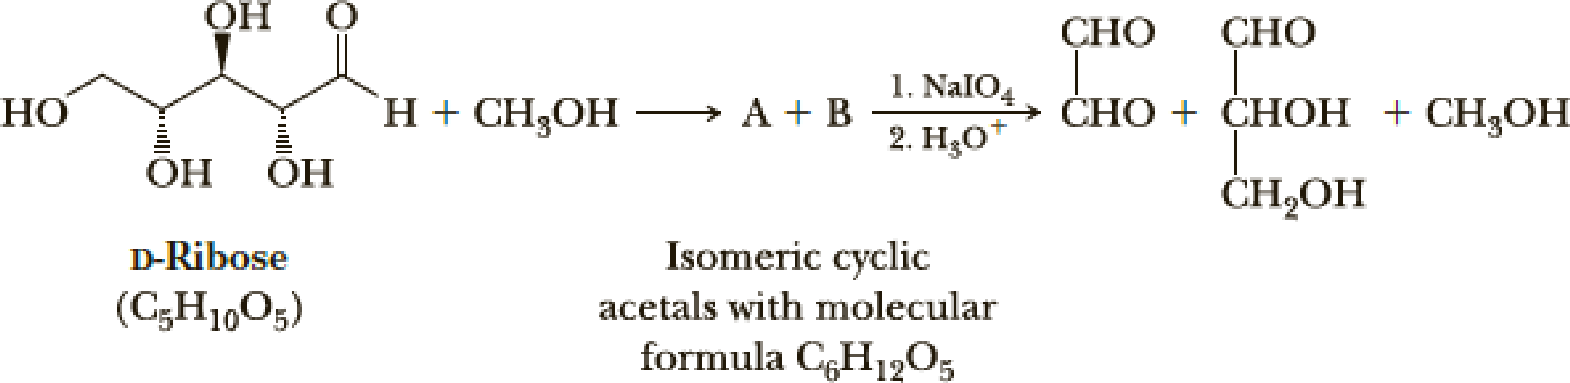 Chapter 16, Problem 16.70P, Ribose, a carbohydrate with the formula shown, forms a cyclic hemiacetal, which, in principle, could